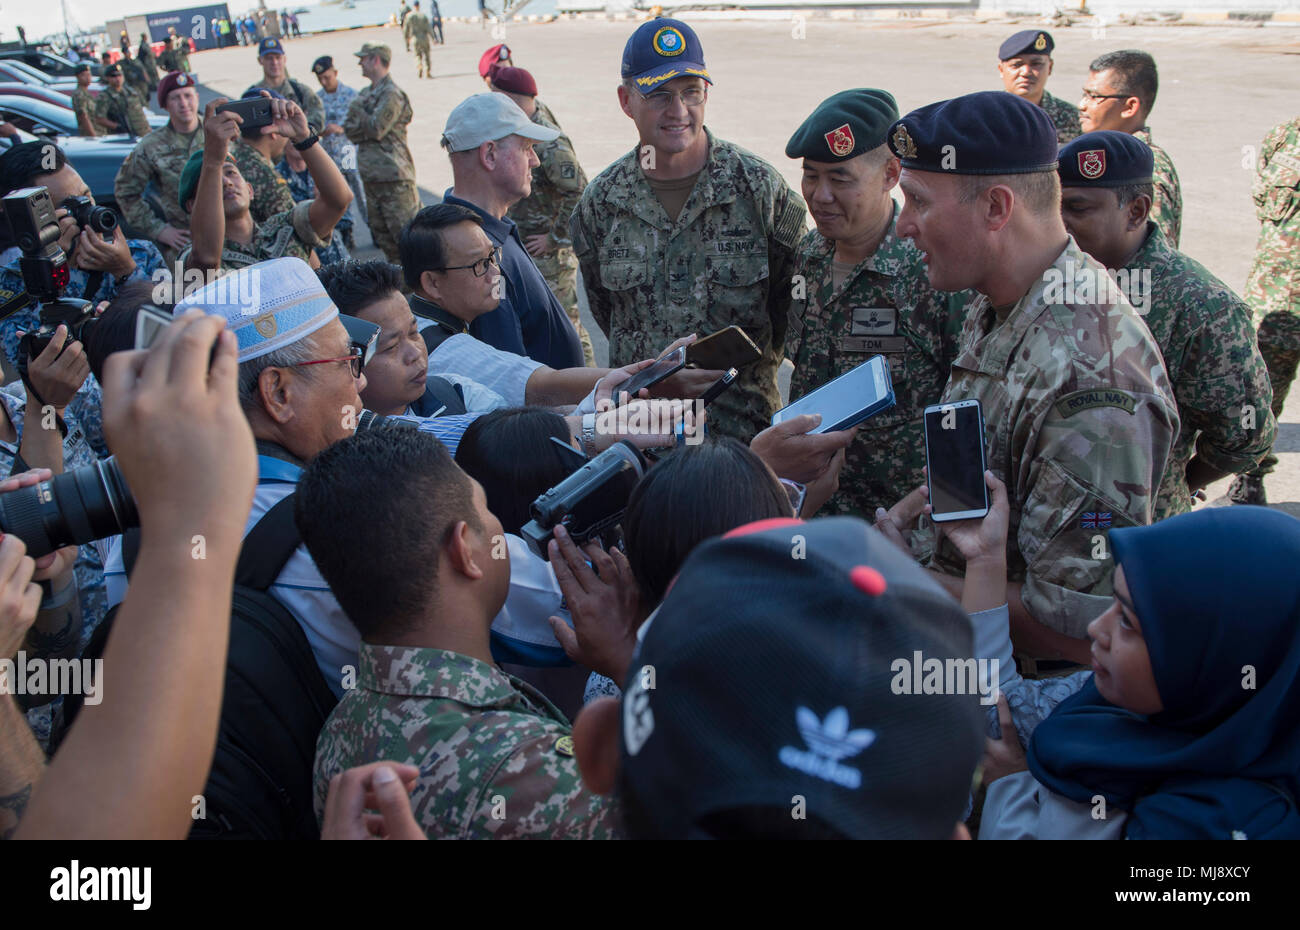 180421-N-OU129-113 TAWAU, Malaysia (April 21, 2018) Pacific Partnership 2018 (PP18) mission leaders answer media questions following the Military Sealift Command expeditionary fast transport ship USNS Brunswick's (T-EPF 6) arrival to Tawau, Malaysia. PP18's mission is to work collectively with host and partner nations to enhance regional interoperability and disaster response capabilities, increased stability and security in the region, and foster new and enduring friendships across the Indo-Pacific Region. Pacific Partnership, now in its 13th iteration, is the largest annual multinational hum - Stock Image